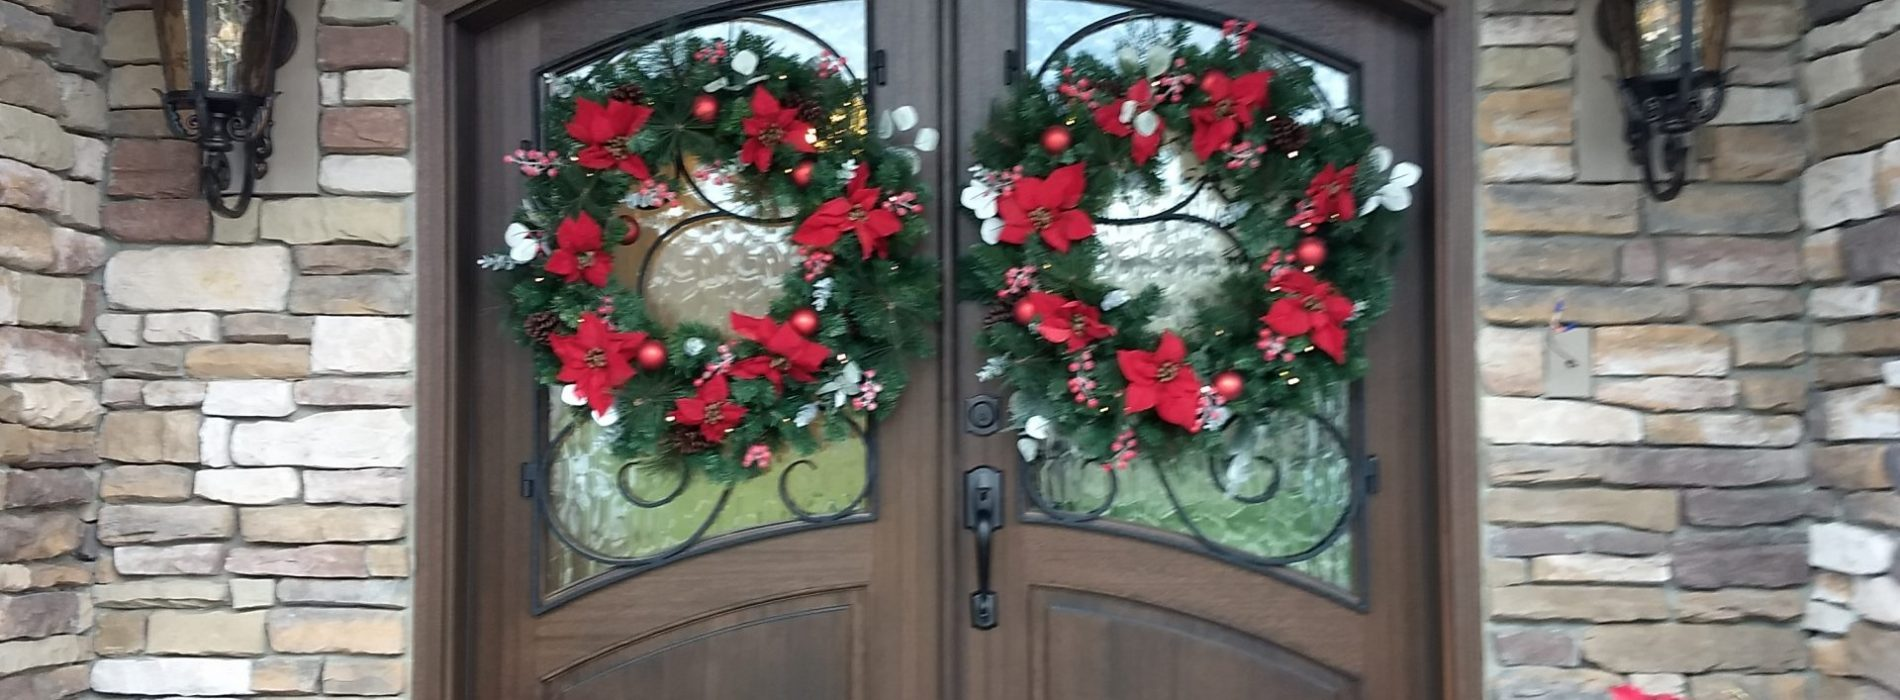 grand entrance doorway with holiday flowers and wreaths